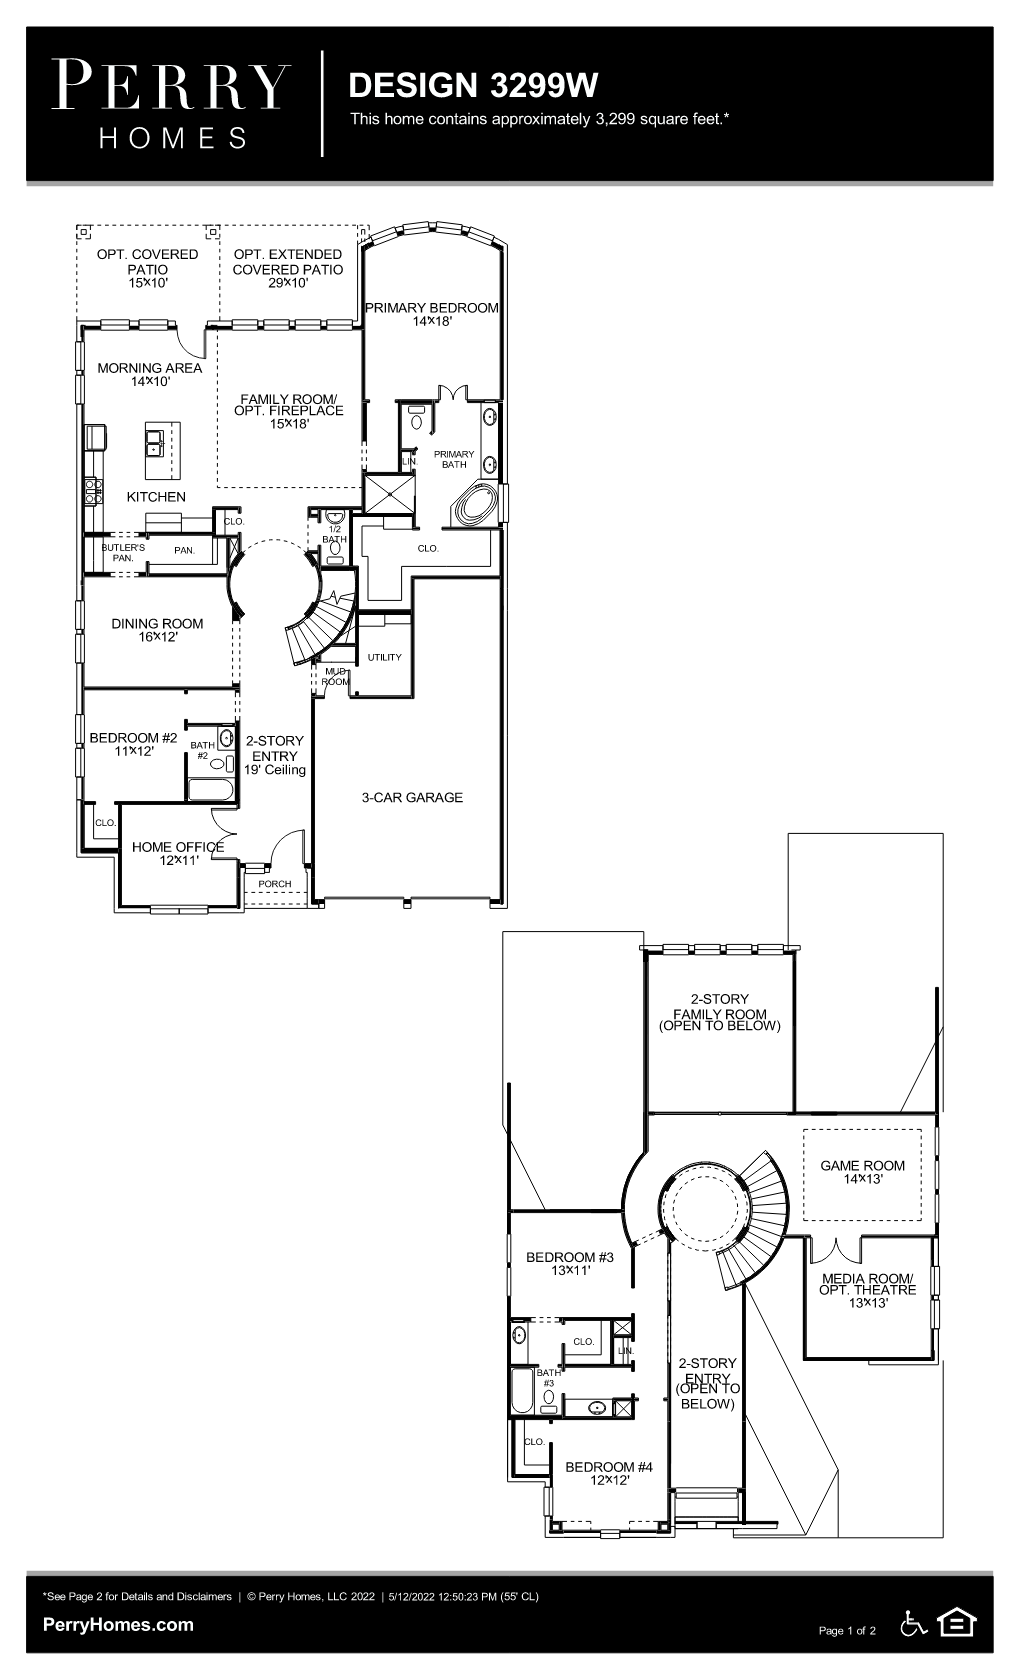 Floor Plan for 3299W